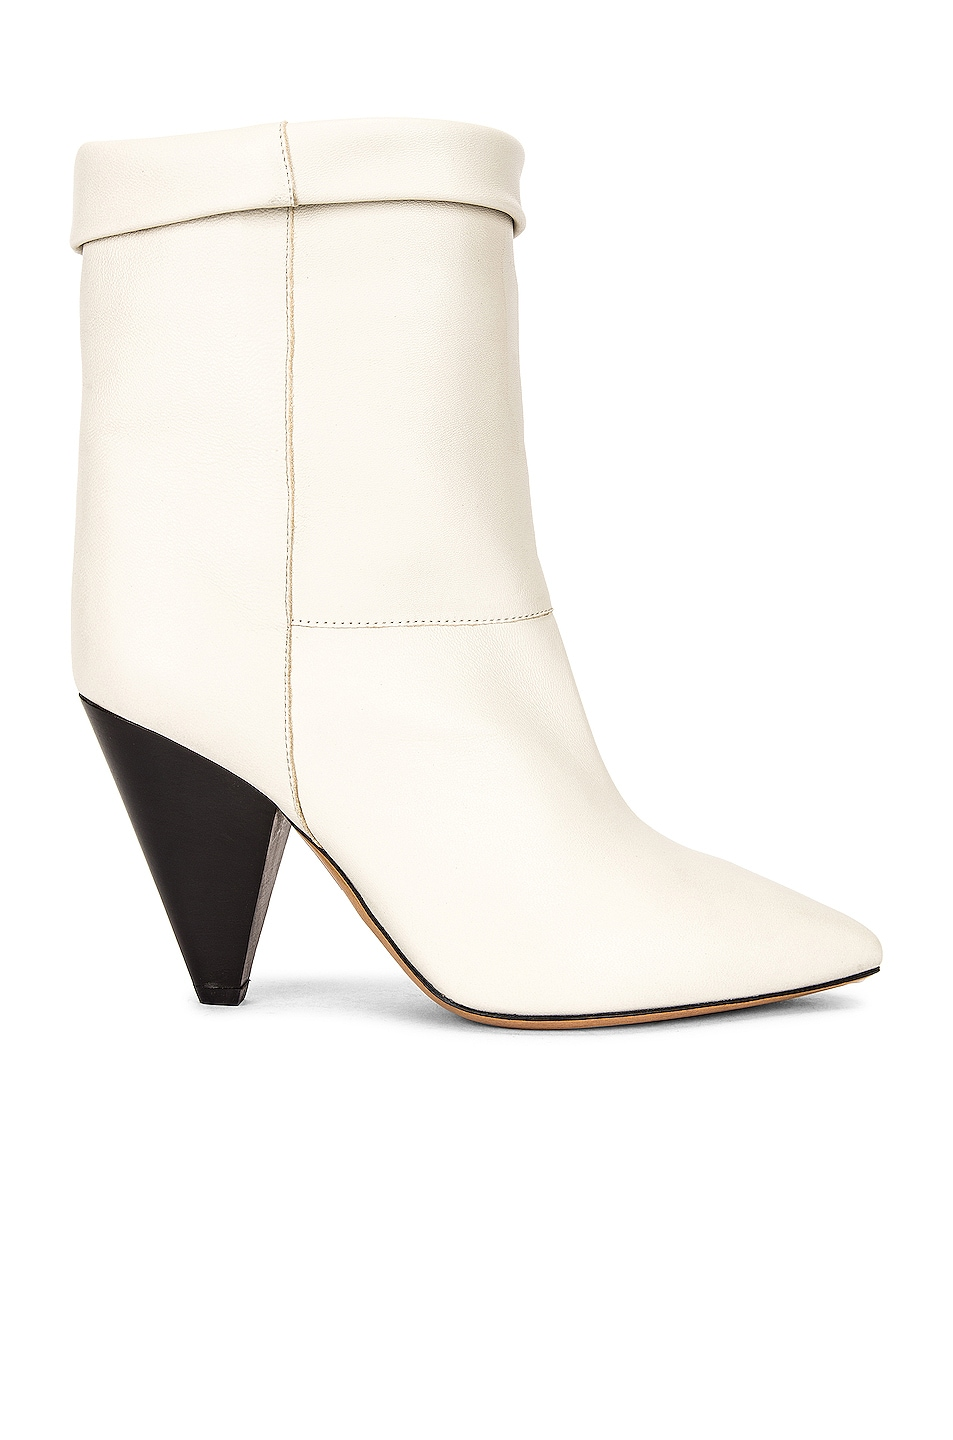 Image 1 of Isabel Marant Luido Boot in Ecru